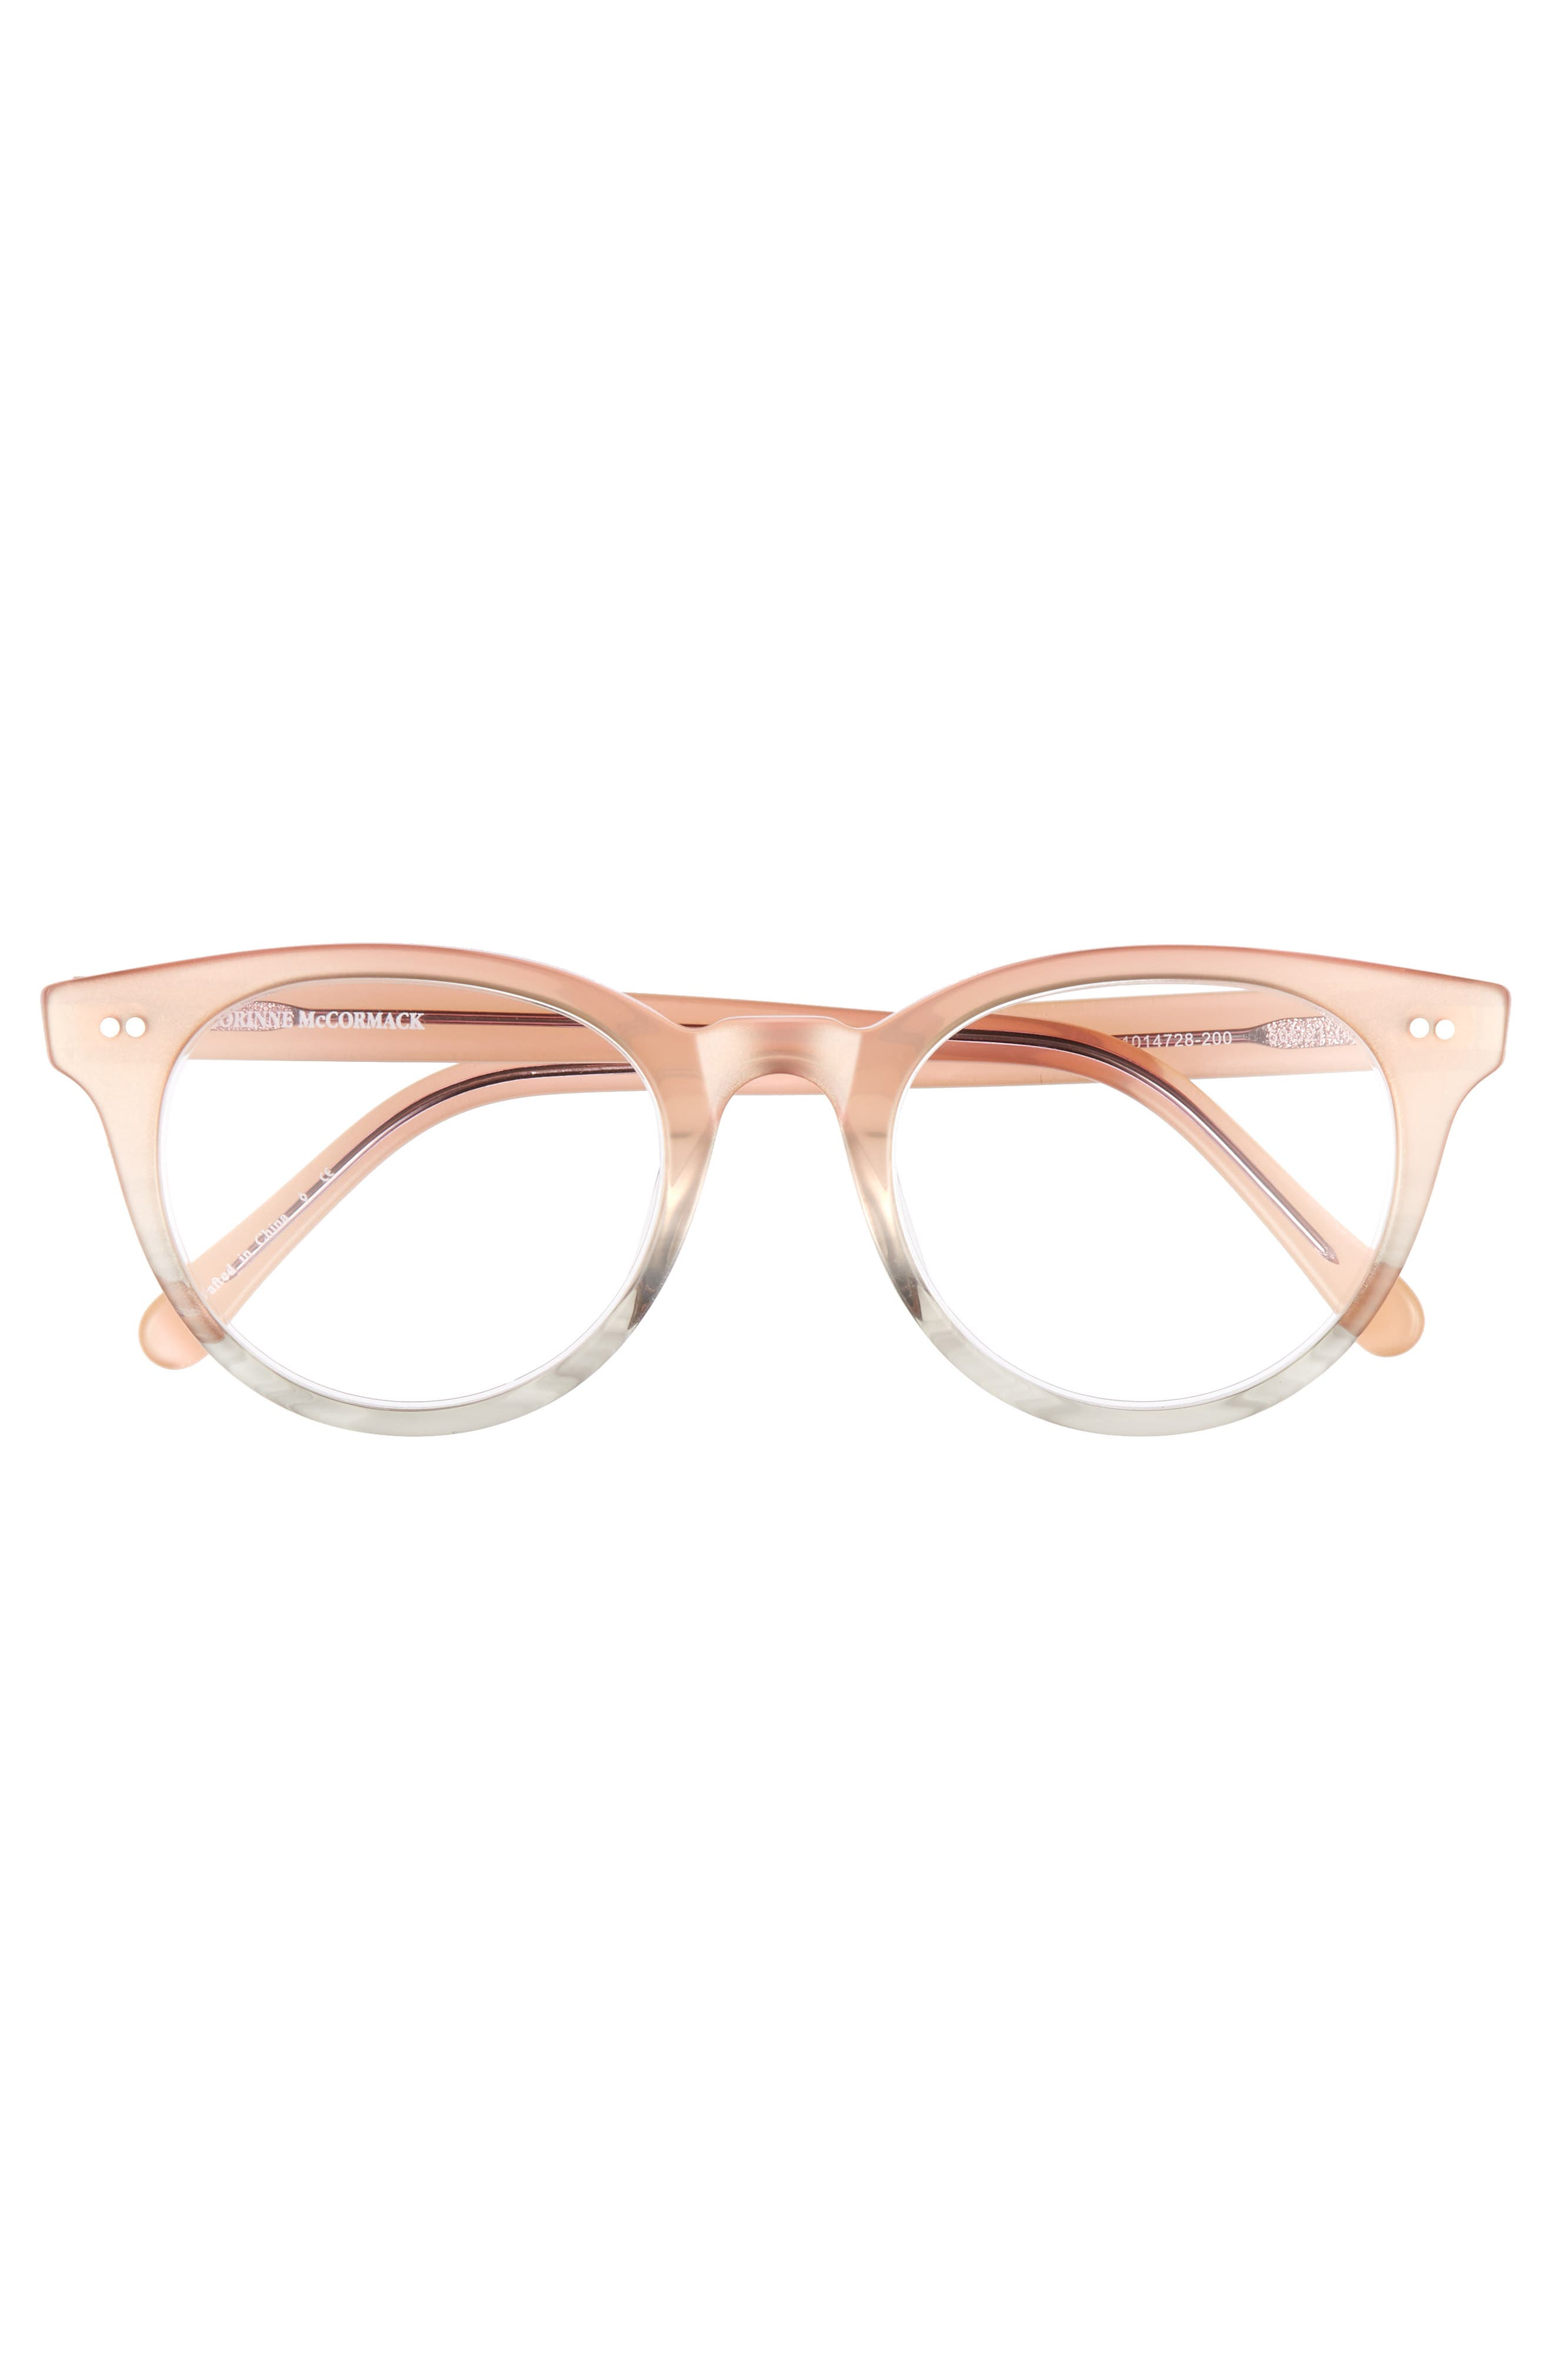 Abby 50mm Reading Glasses,                             Alternate thumbnail 3, color,                             Pink/ Grey